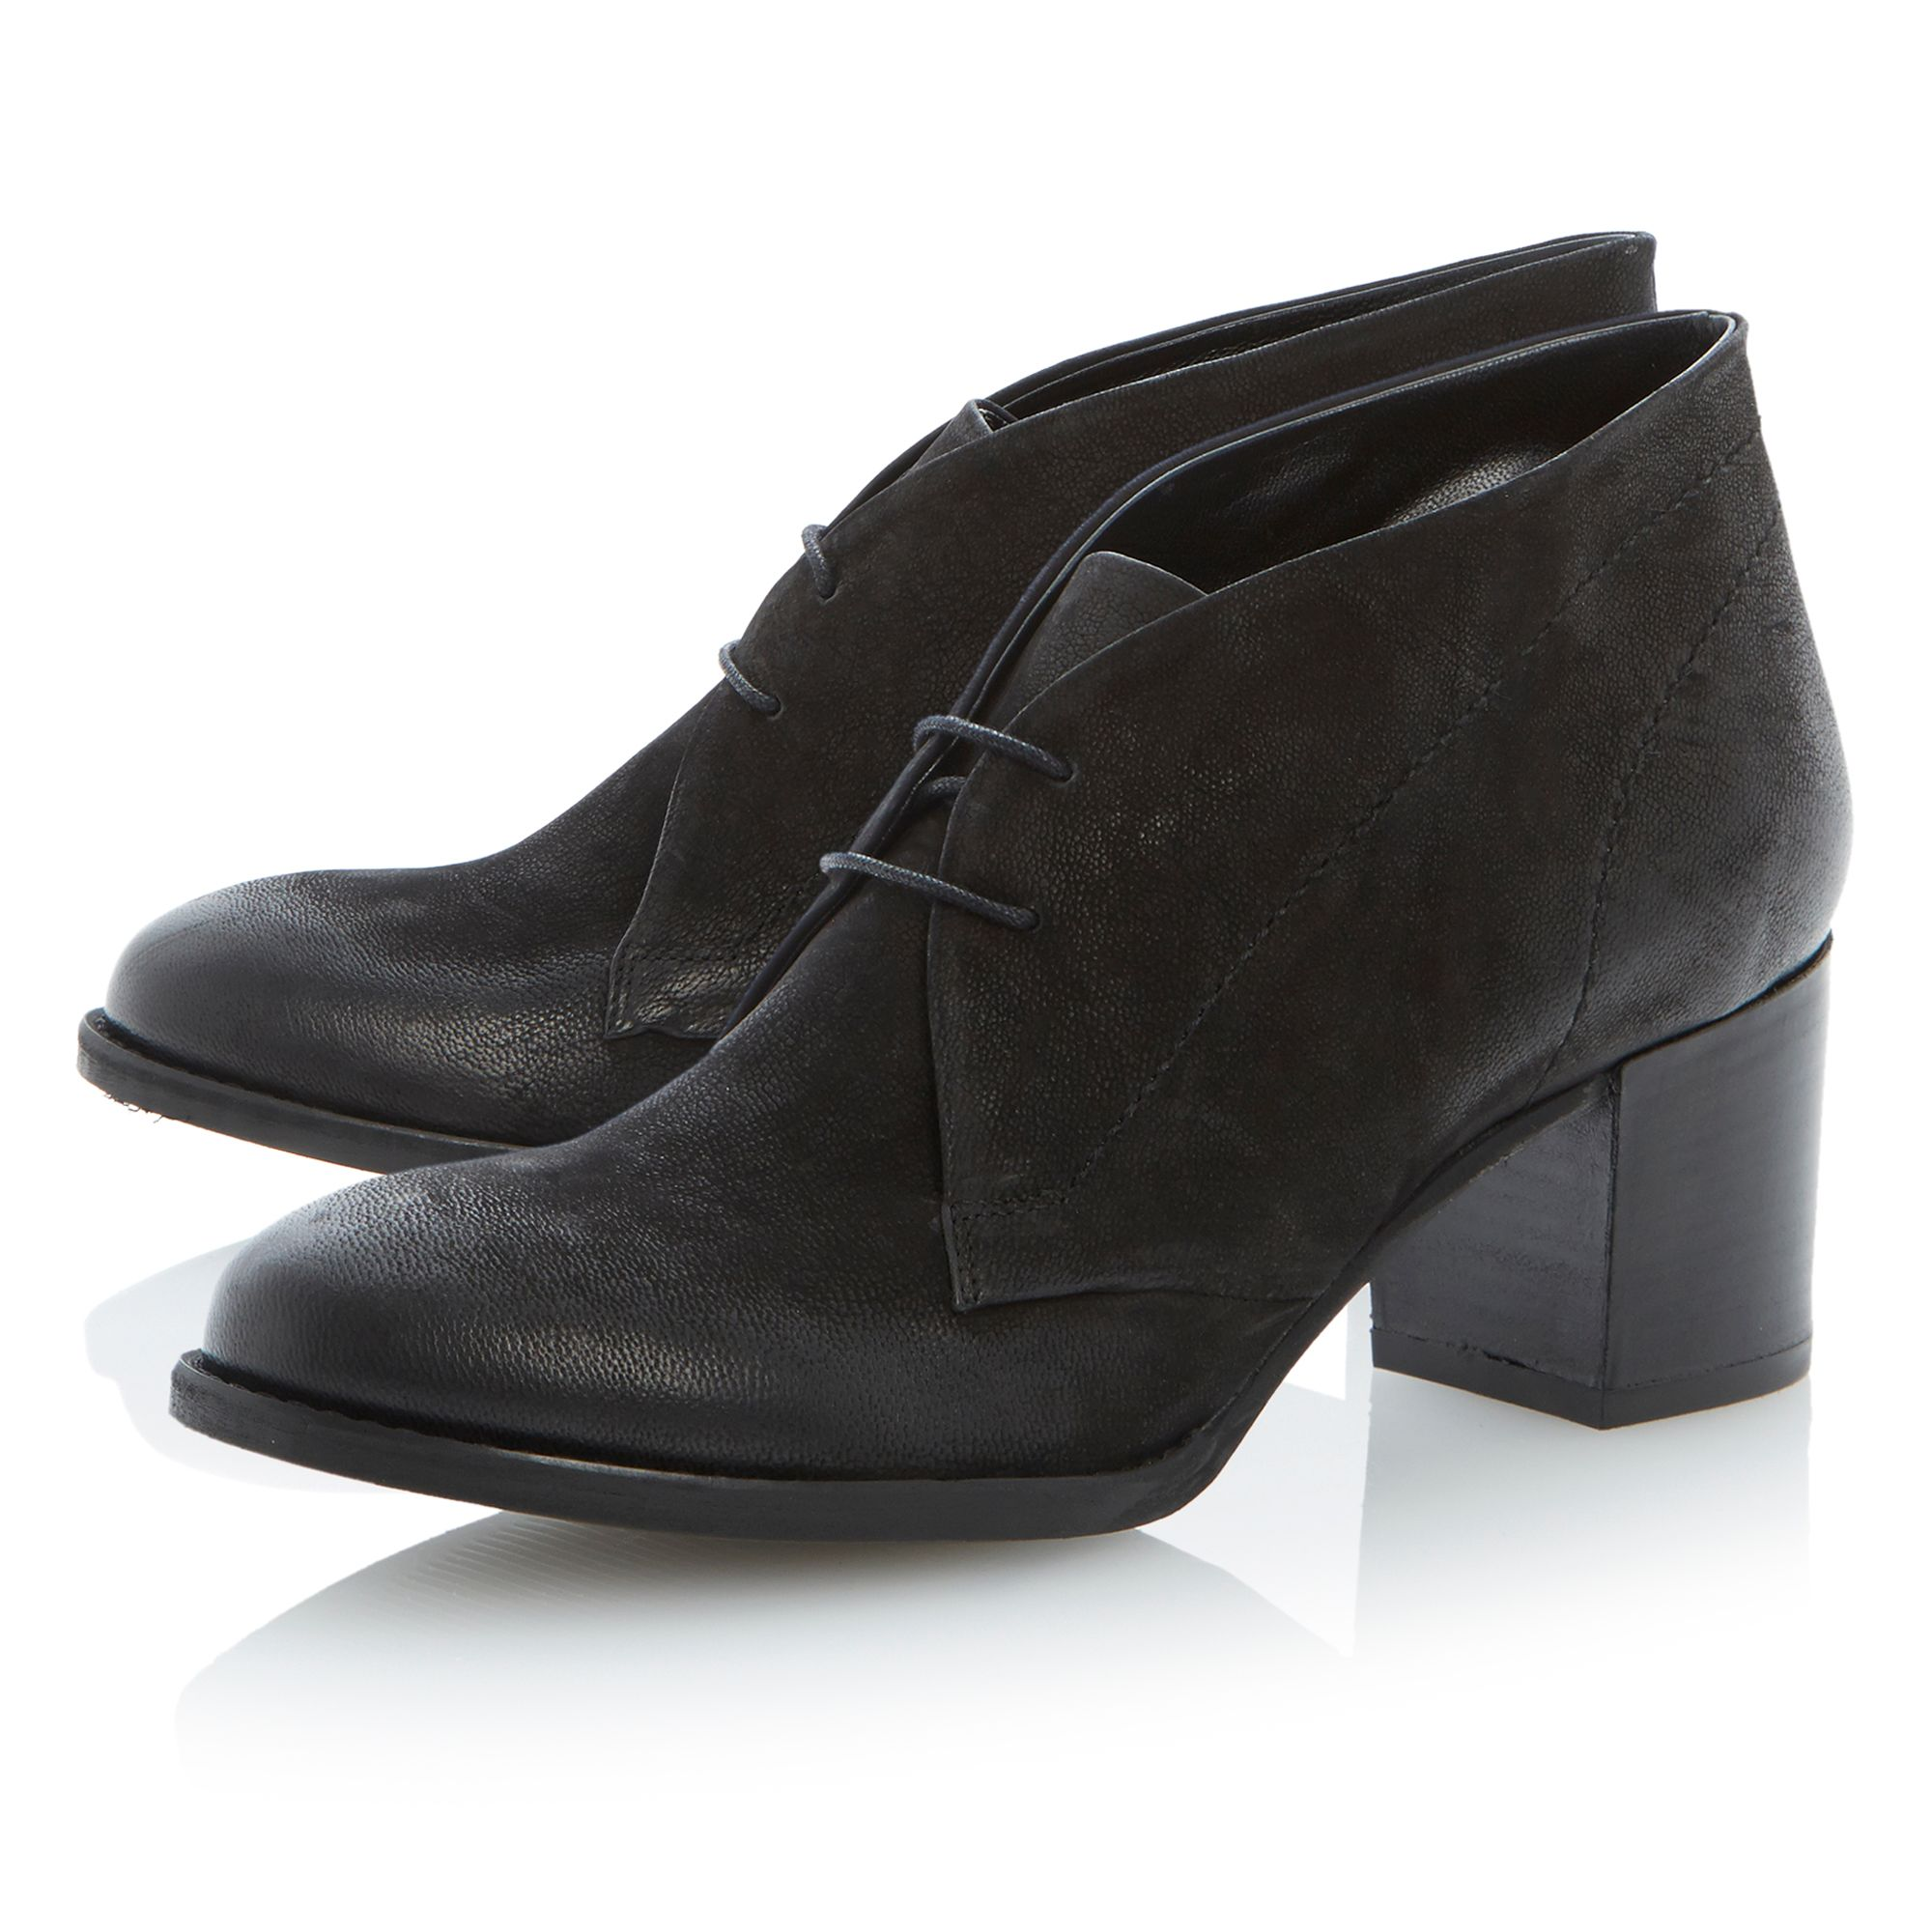 Palazzo leather round toe block heel low boots